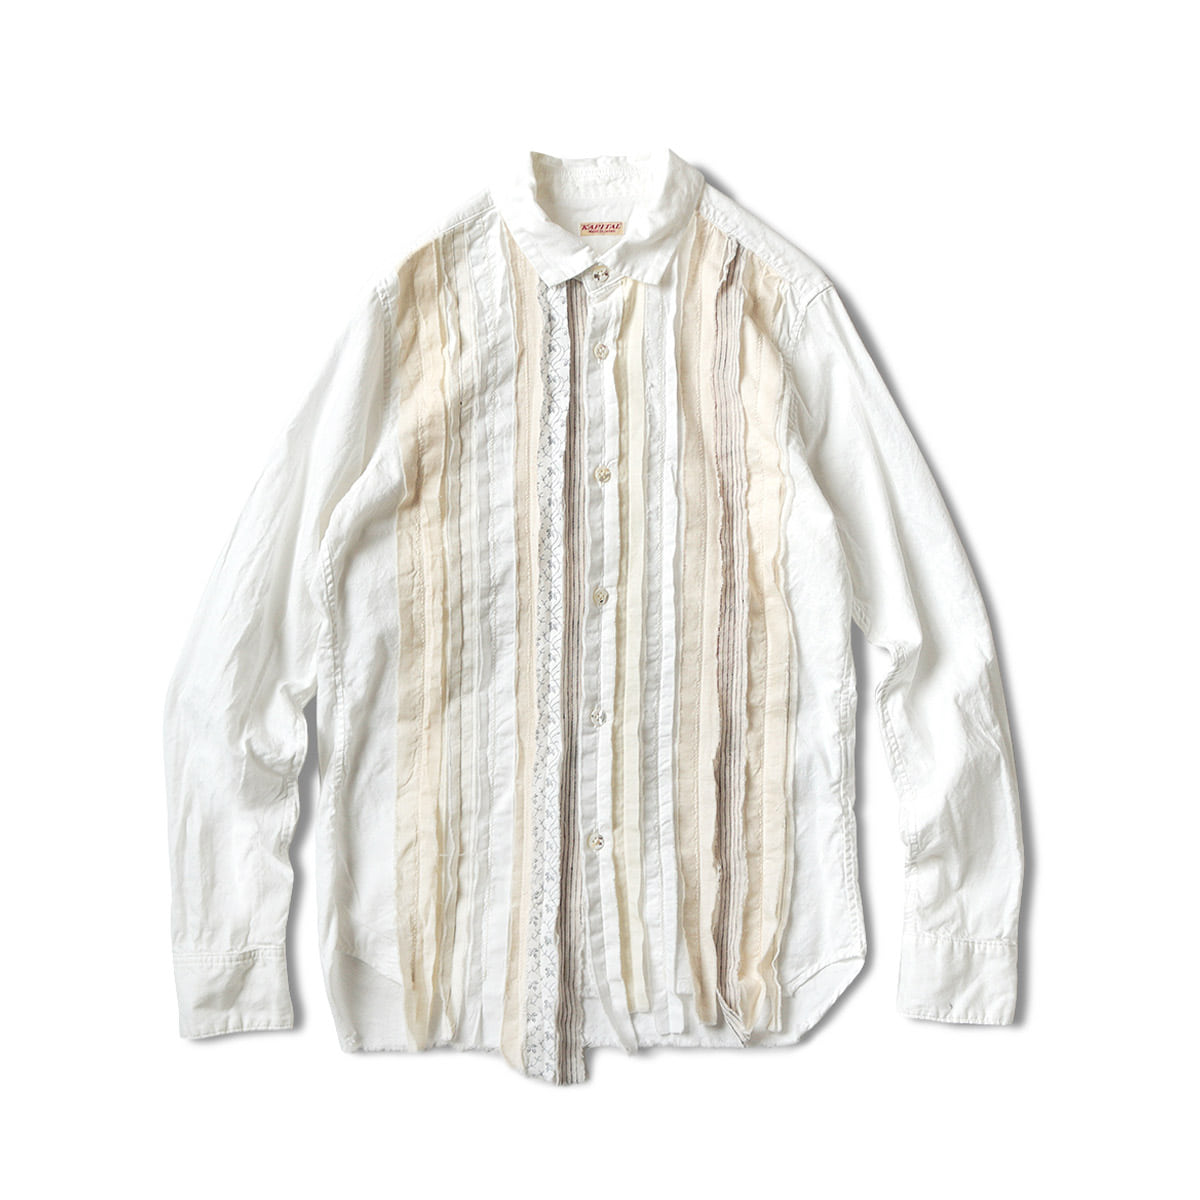 [KAPITAL] OX HOBO DRESS SHIRT 'WH'